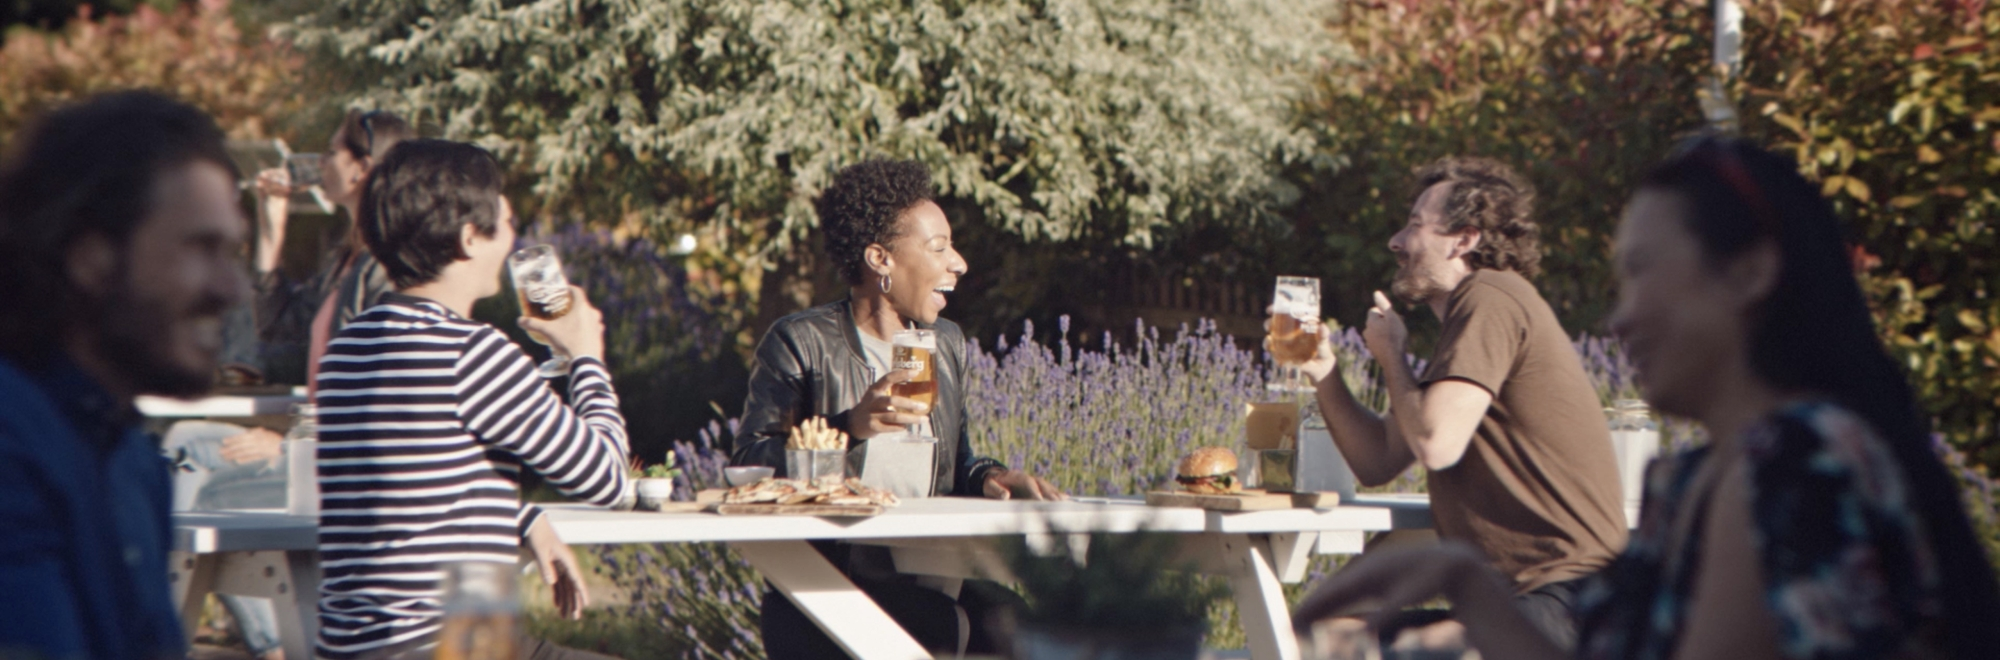 Carlsberg anticipates the nation's thirst for its first pint with friends with 'Welcome Back Pubs' campaign